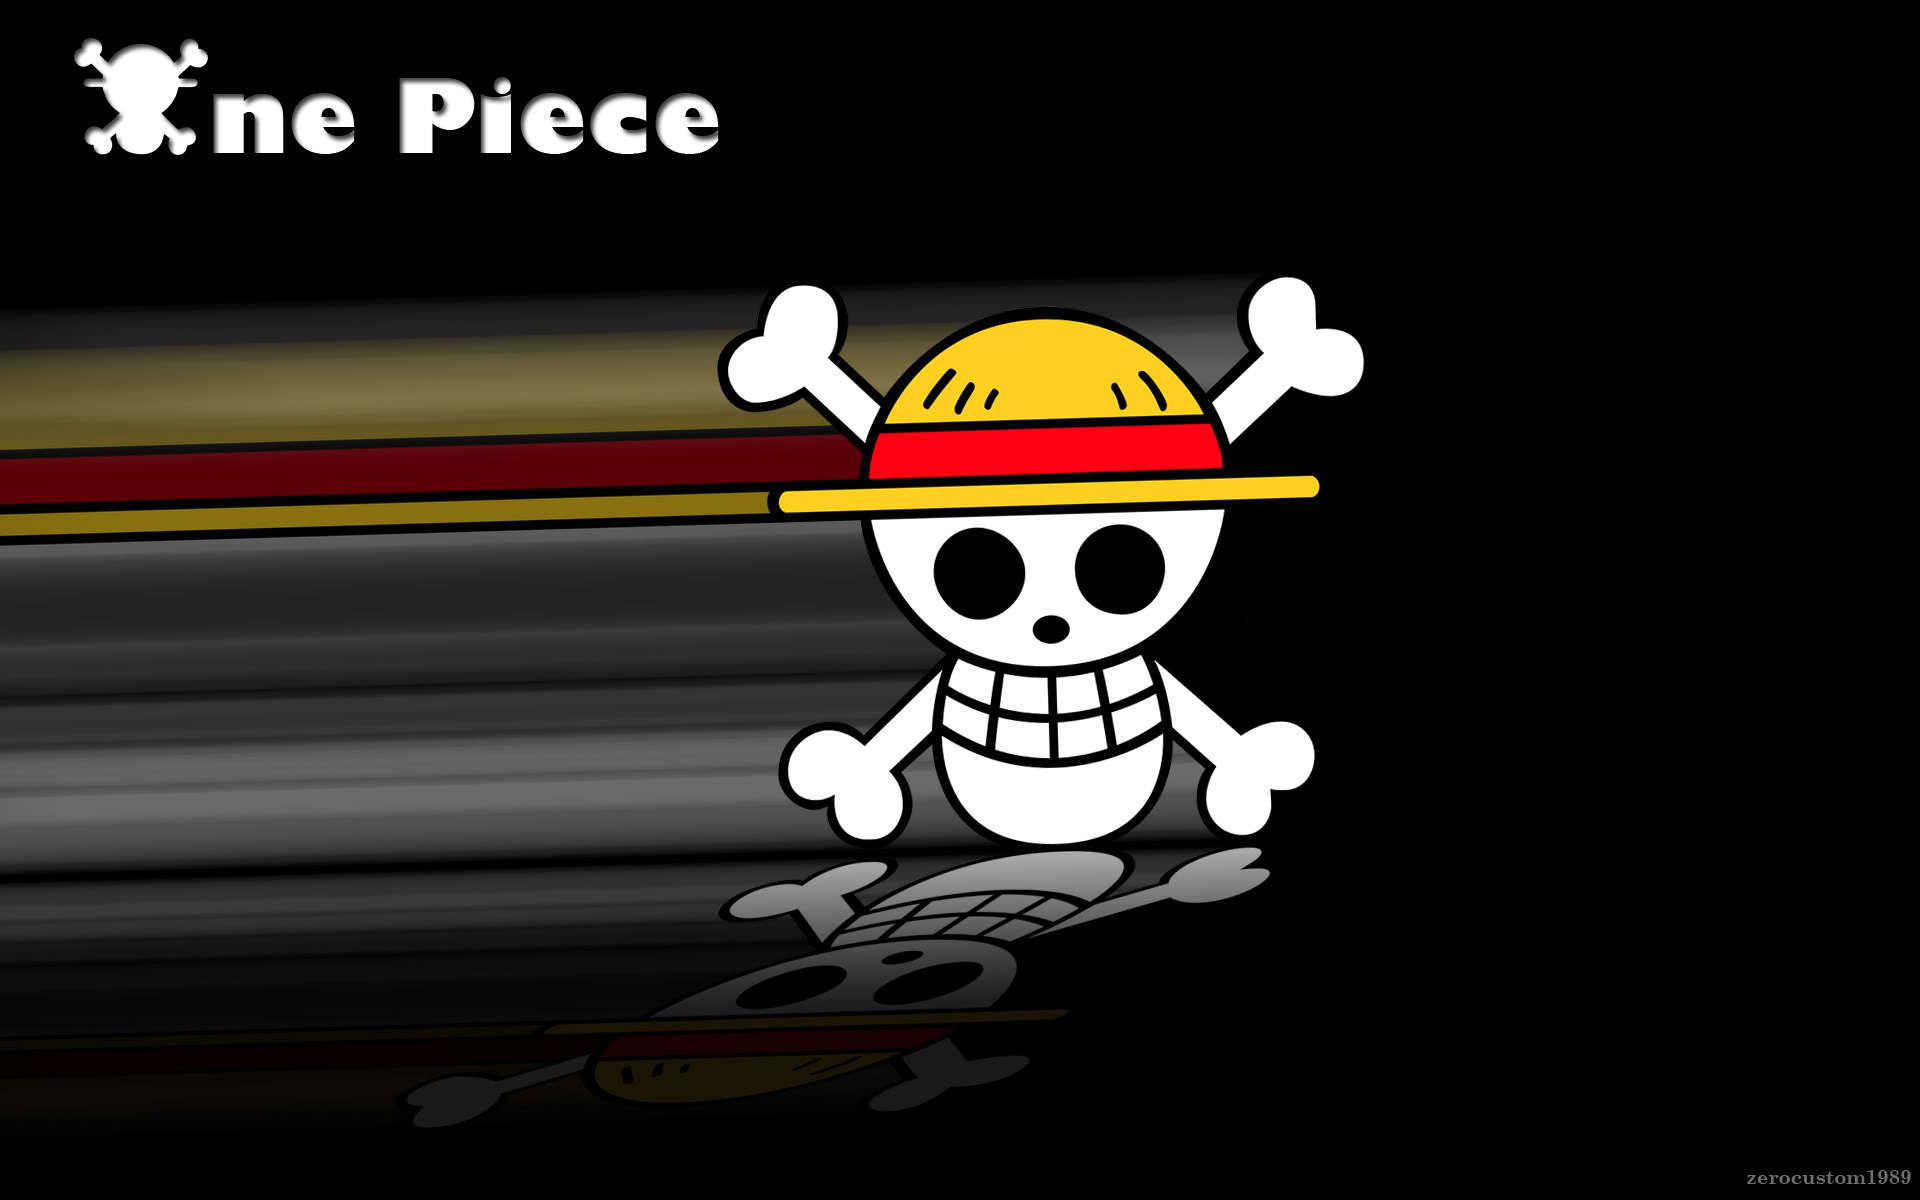 One Piece Images Jolly Roger Hd Wallpaper And Background Photos